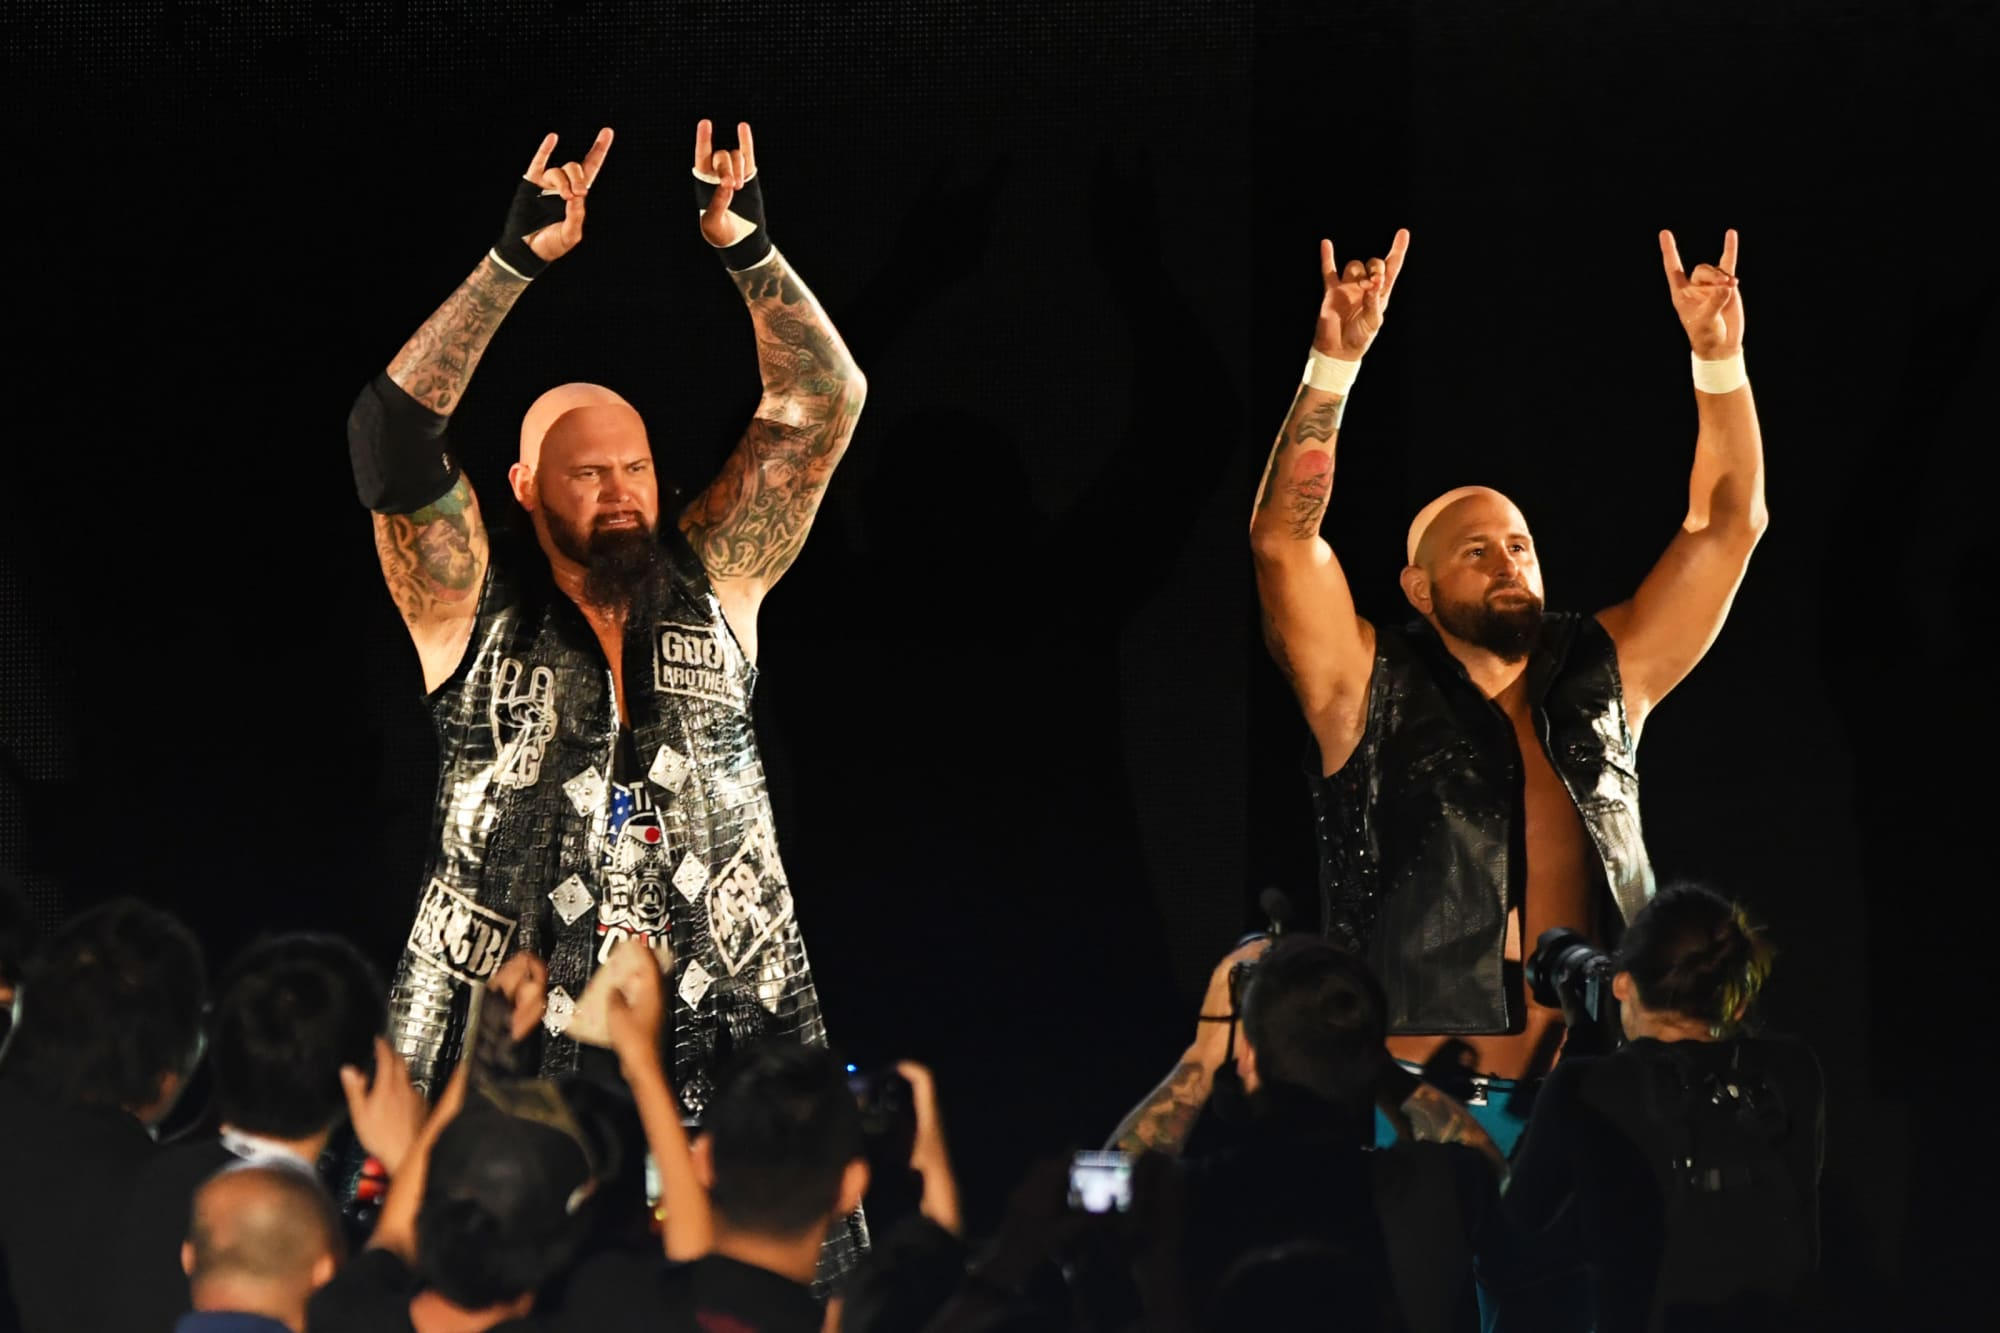 Did we just see the reformation of The Bullet Club on AEW Television?